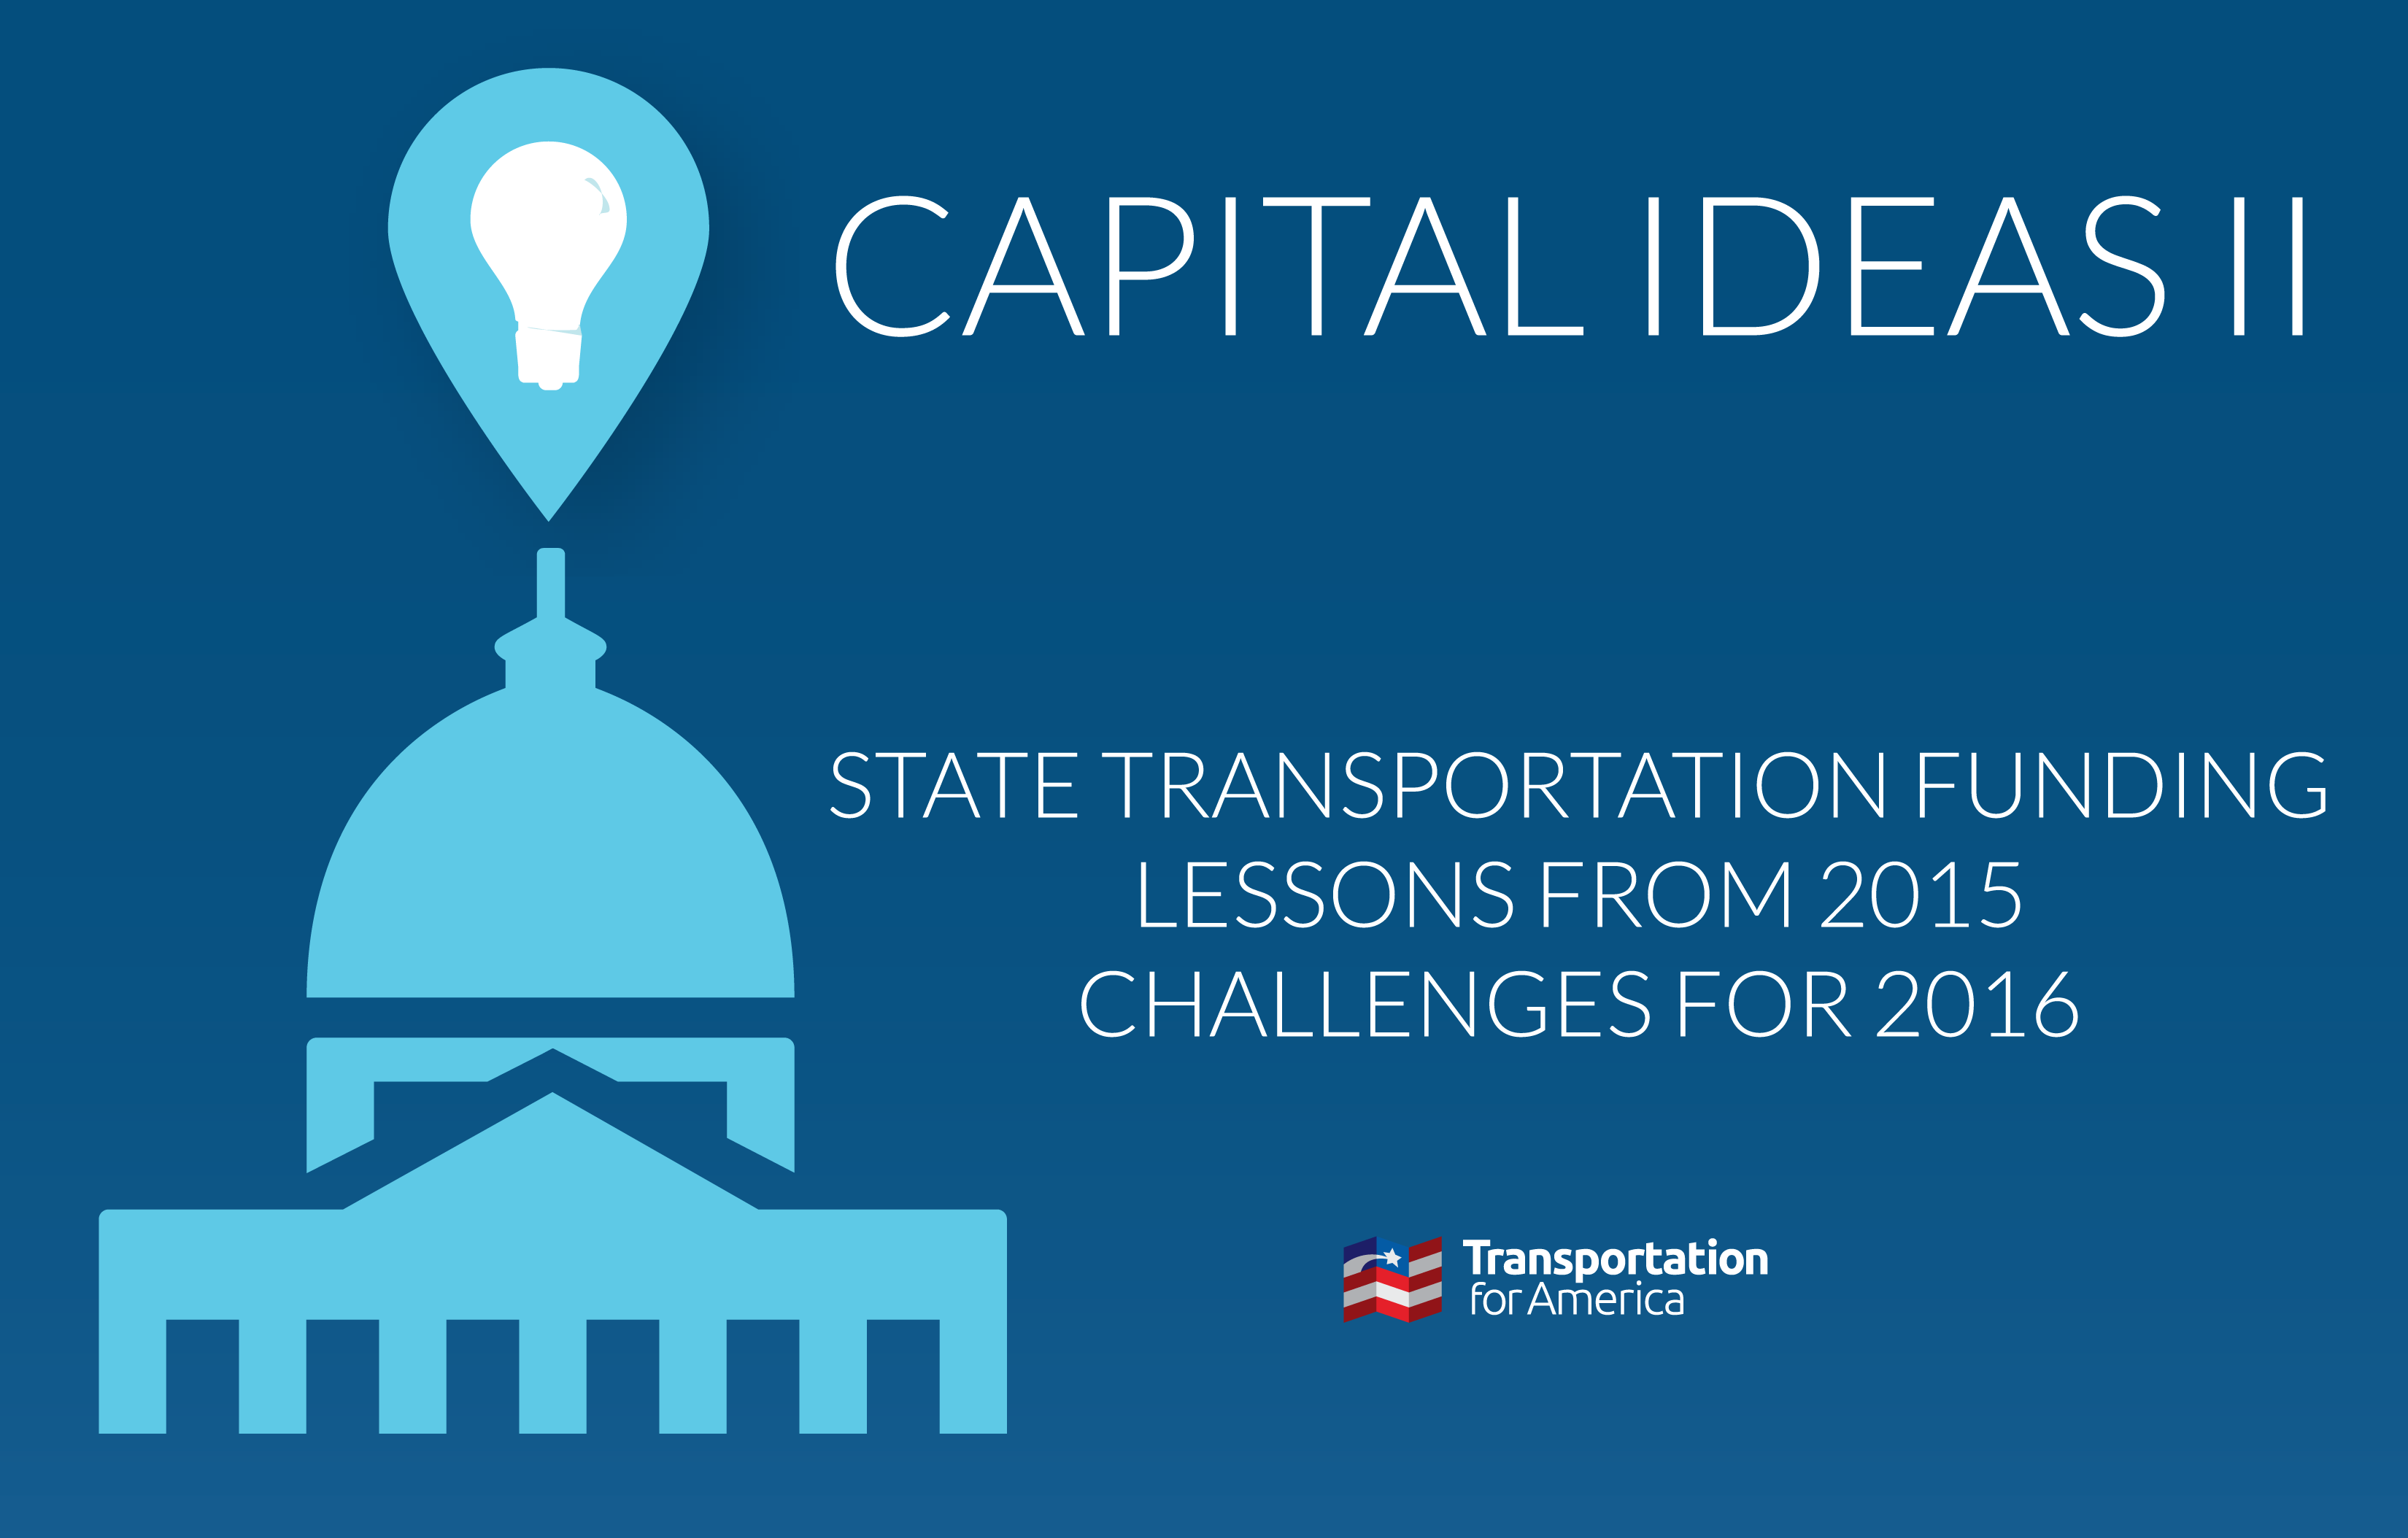 State Transportation Funding in 2015